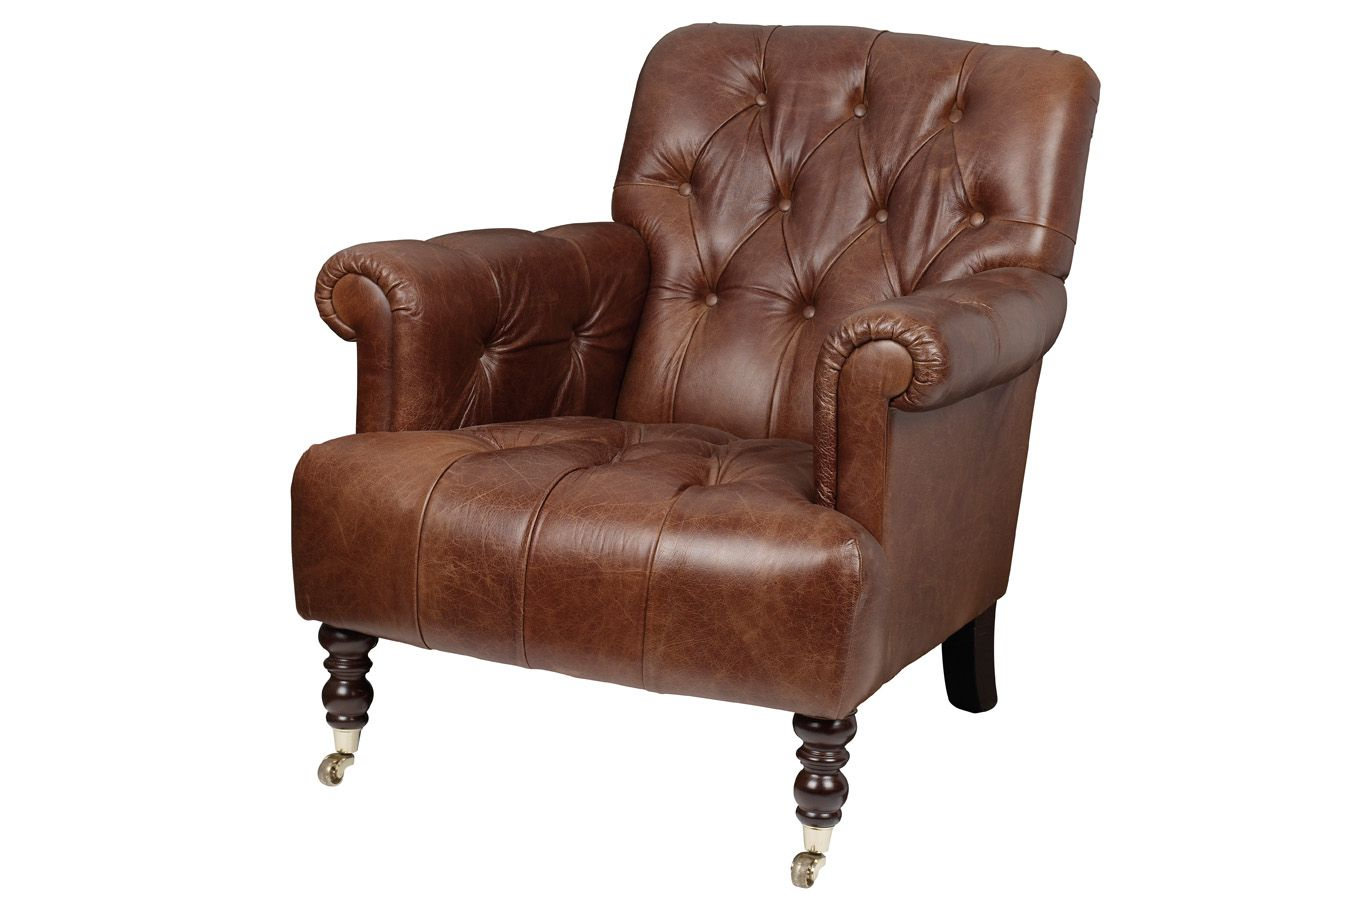 Lesesessel Ikea alberton leather chair home